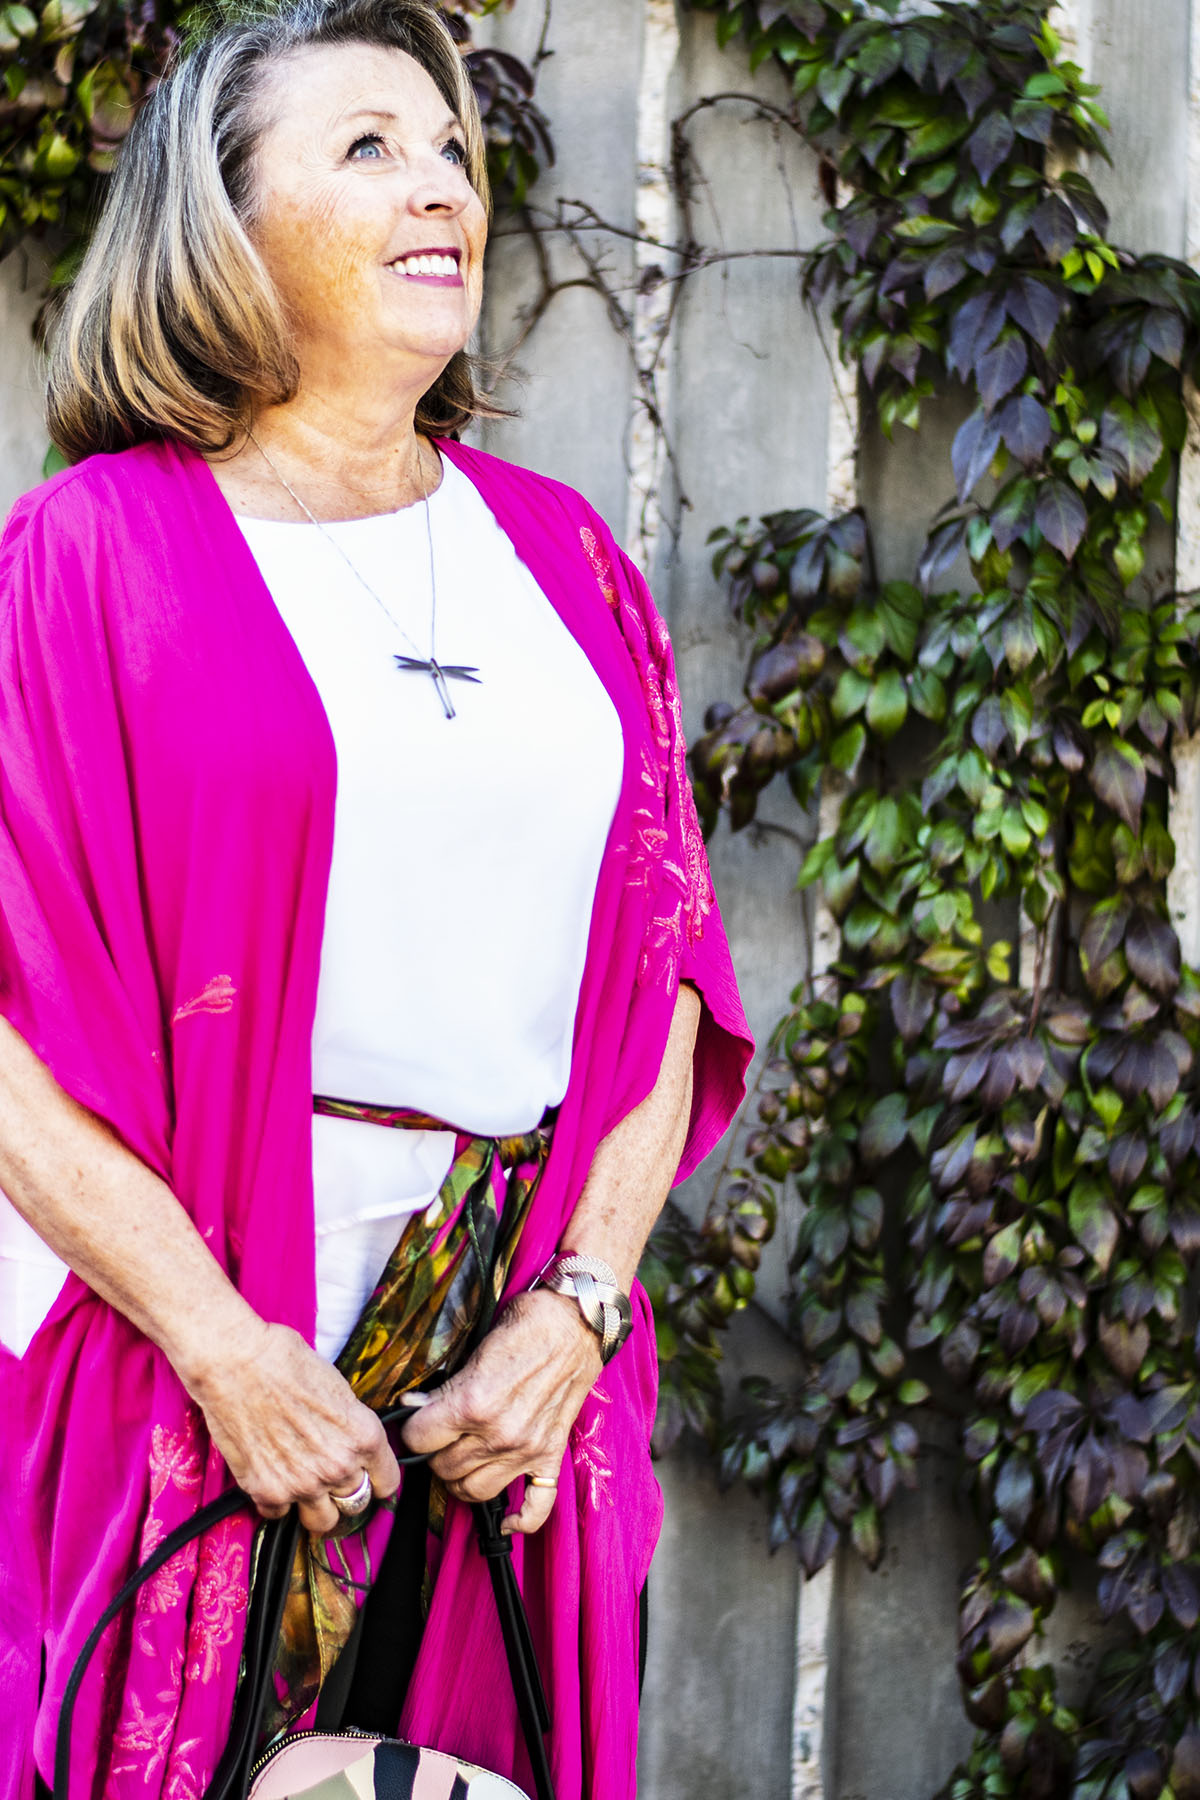 Unlimited Ideas for Swoon-Worthy Outfits with Shades of Pink